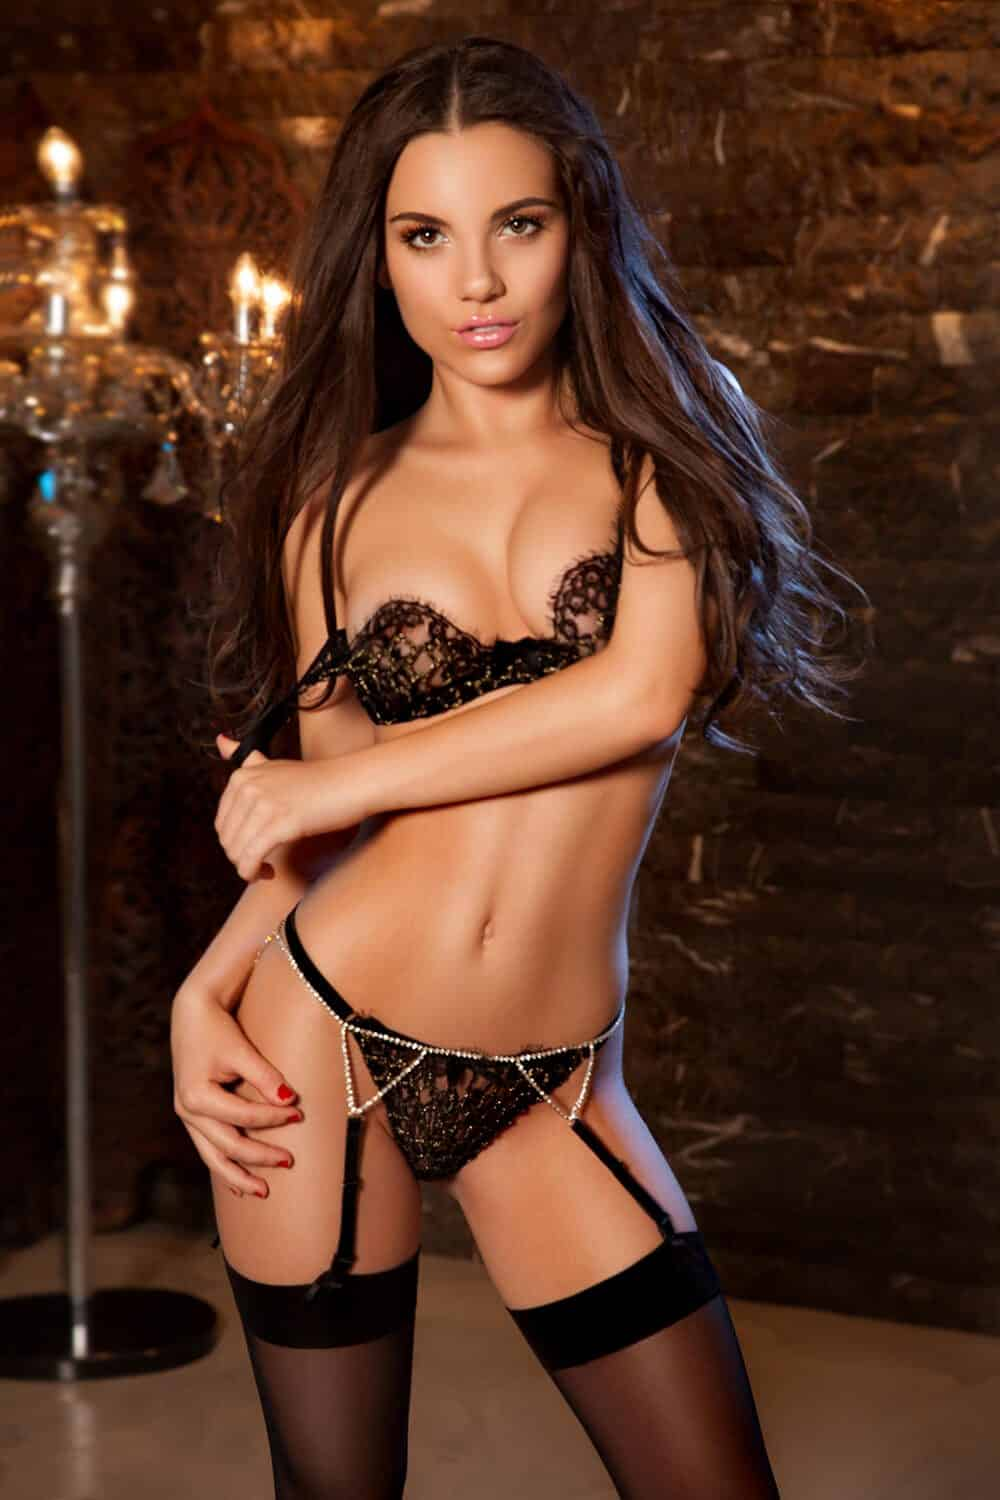 Angel is an Adorable 21-year-old Kensington Escort